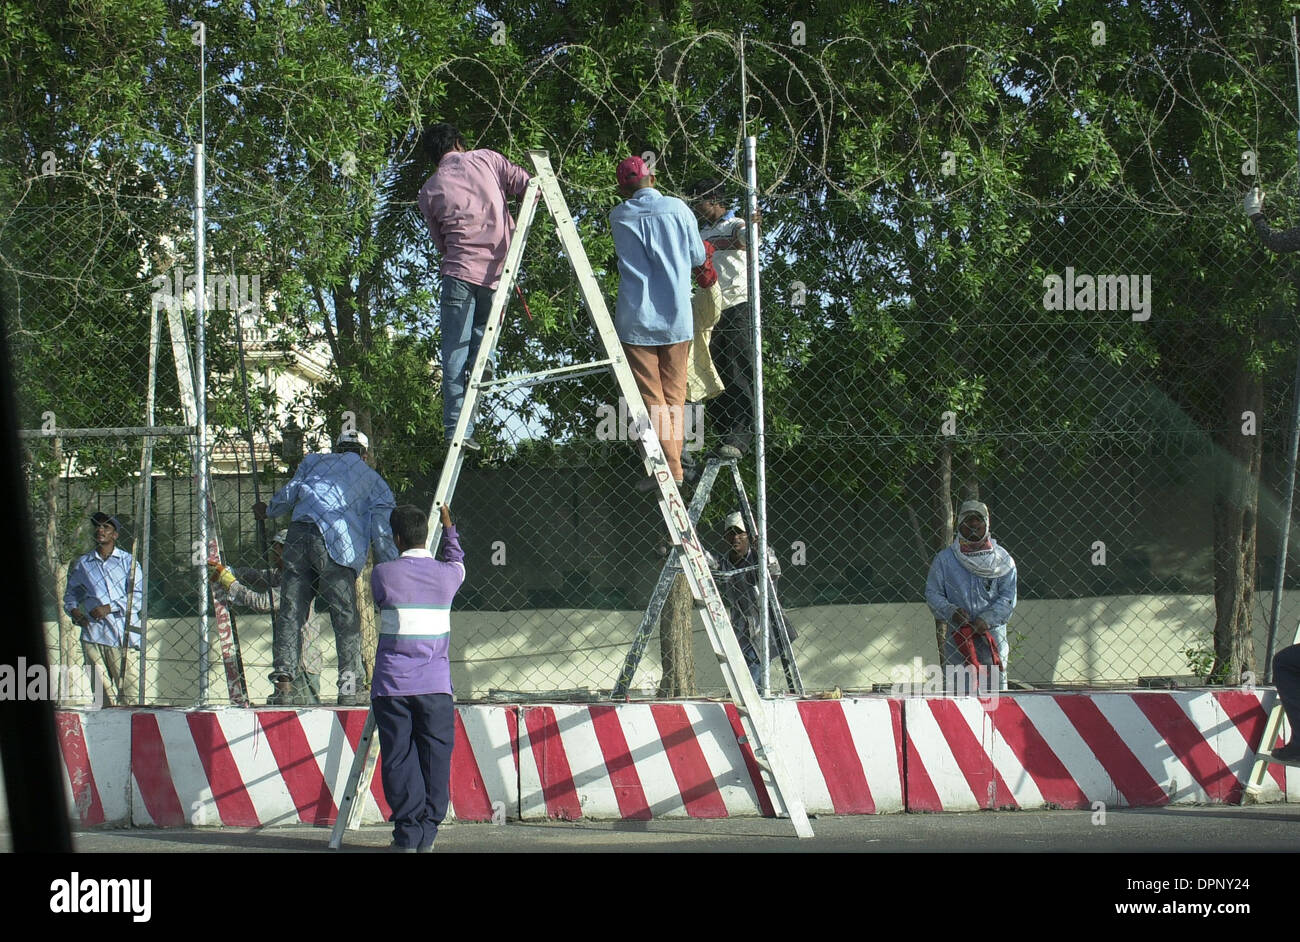 Workers installing barbed wire and other security measures on the perimeter of a compound housing foreigners and westerners. - Stock Image